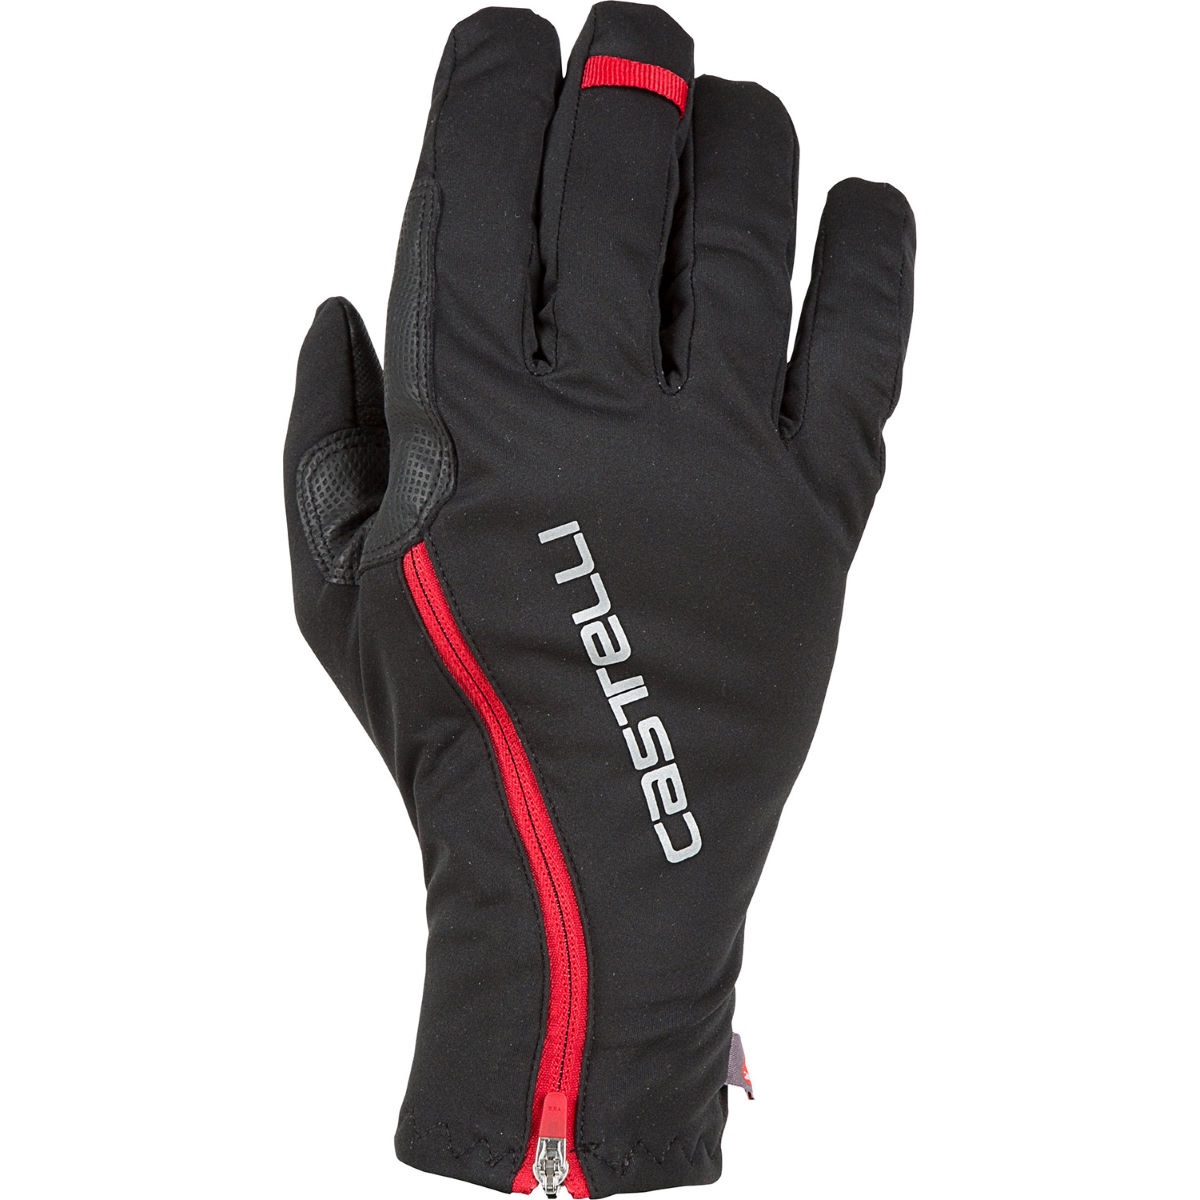 Guantes Castelli Spettacolo ROS - Guantes